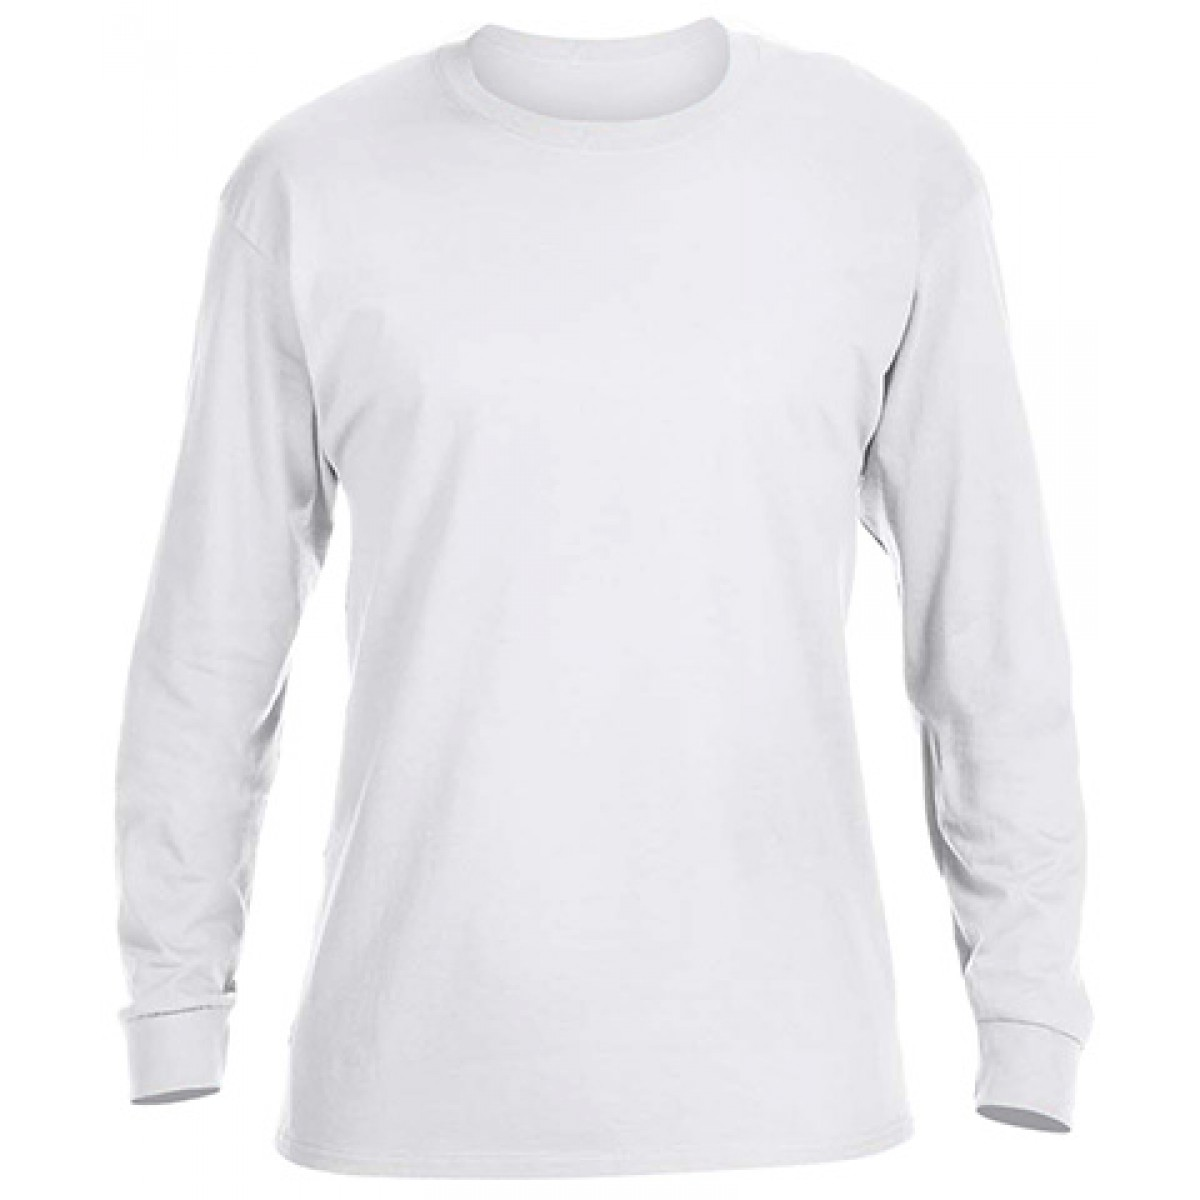 Basic Long Sleeve Crew Neck -White-YM